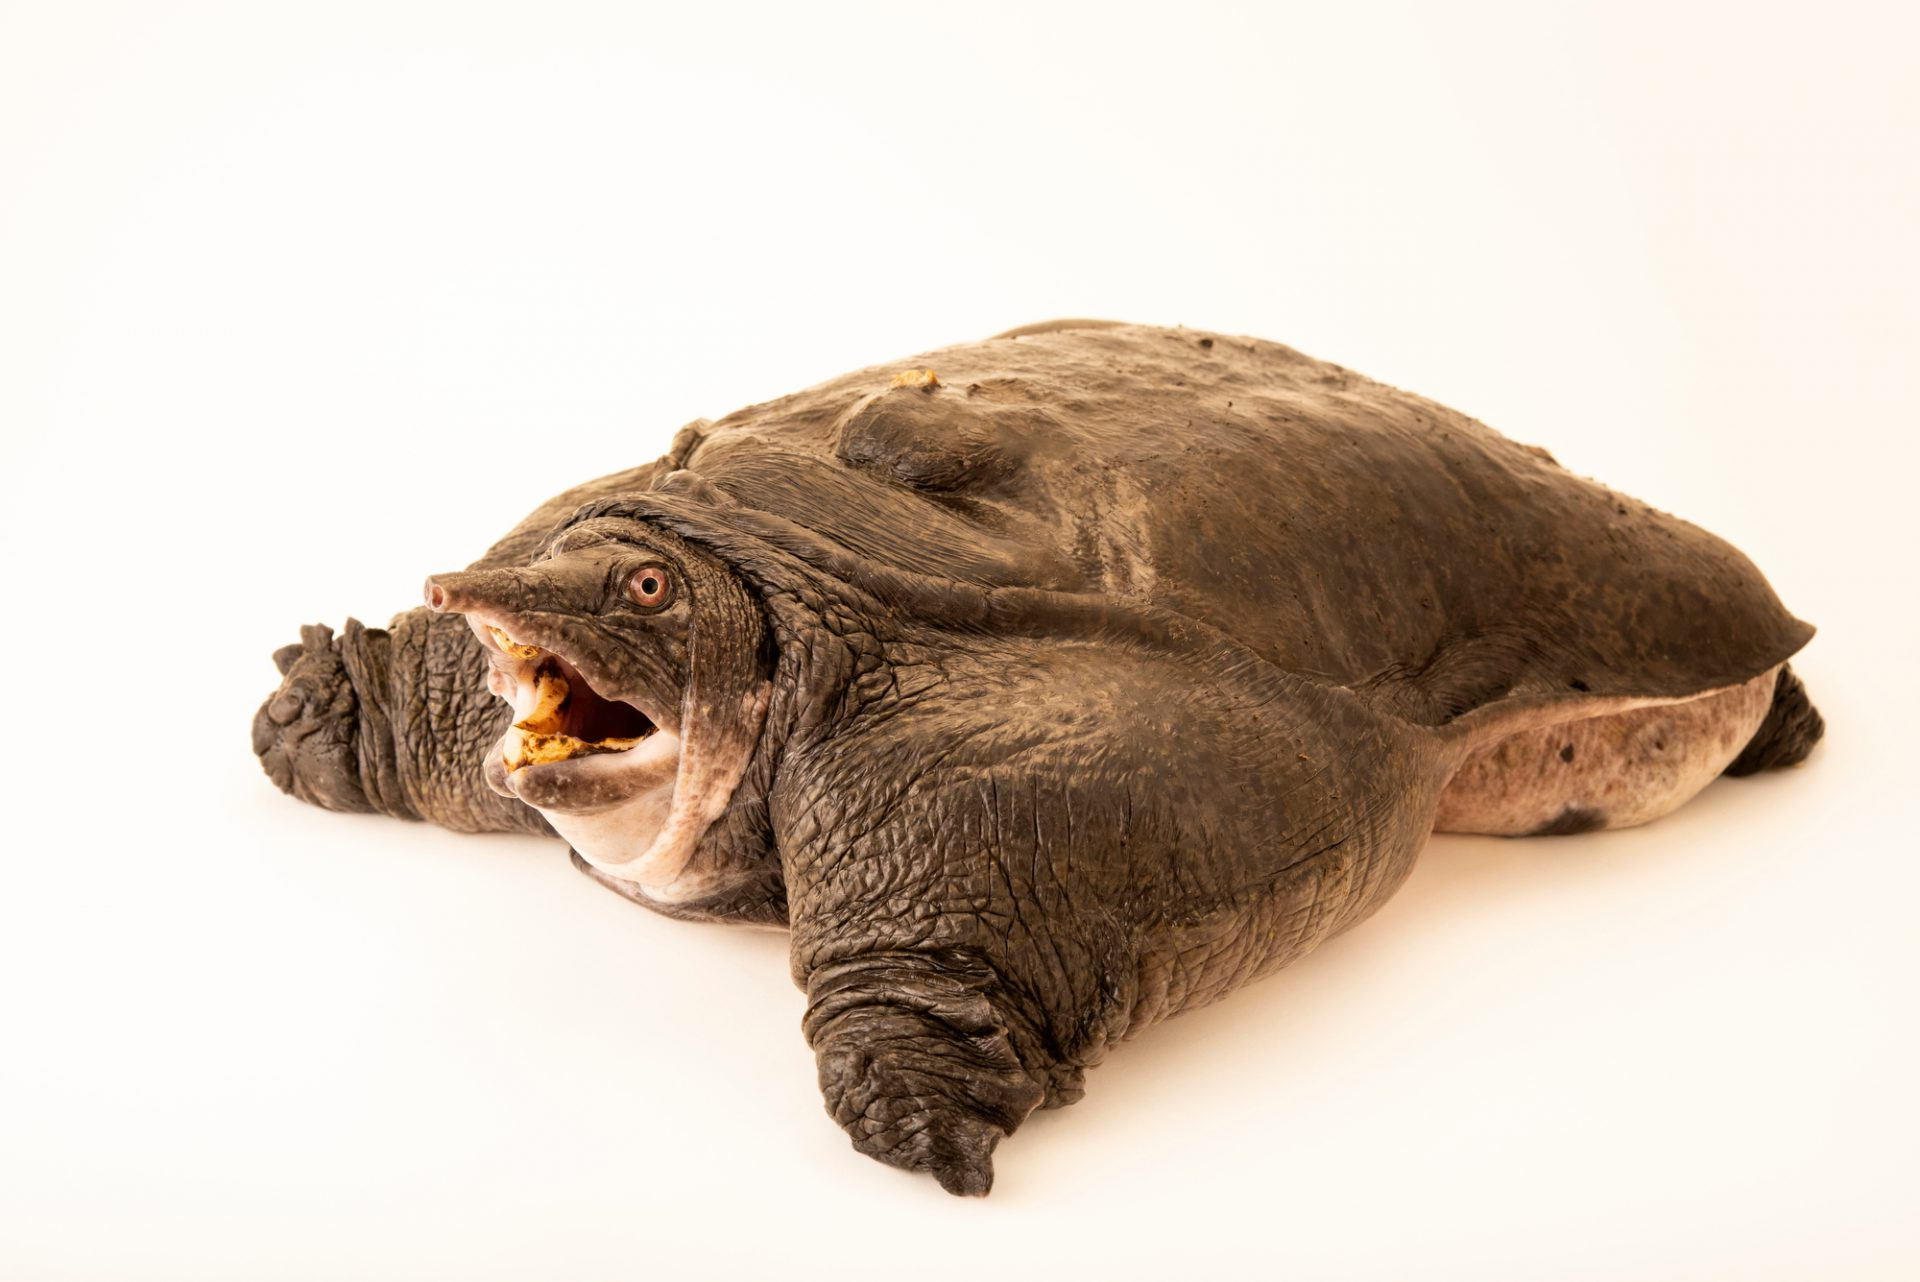 An endangered Burmese peacock softshell turtle (Nilssonia formosa) at Wroclaw Zoo.